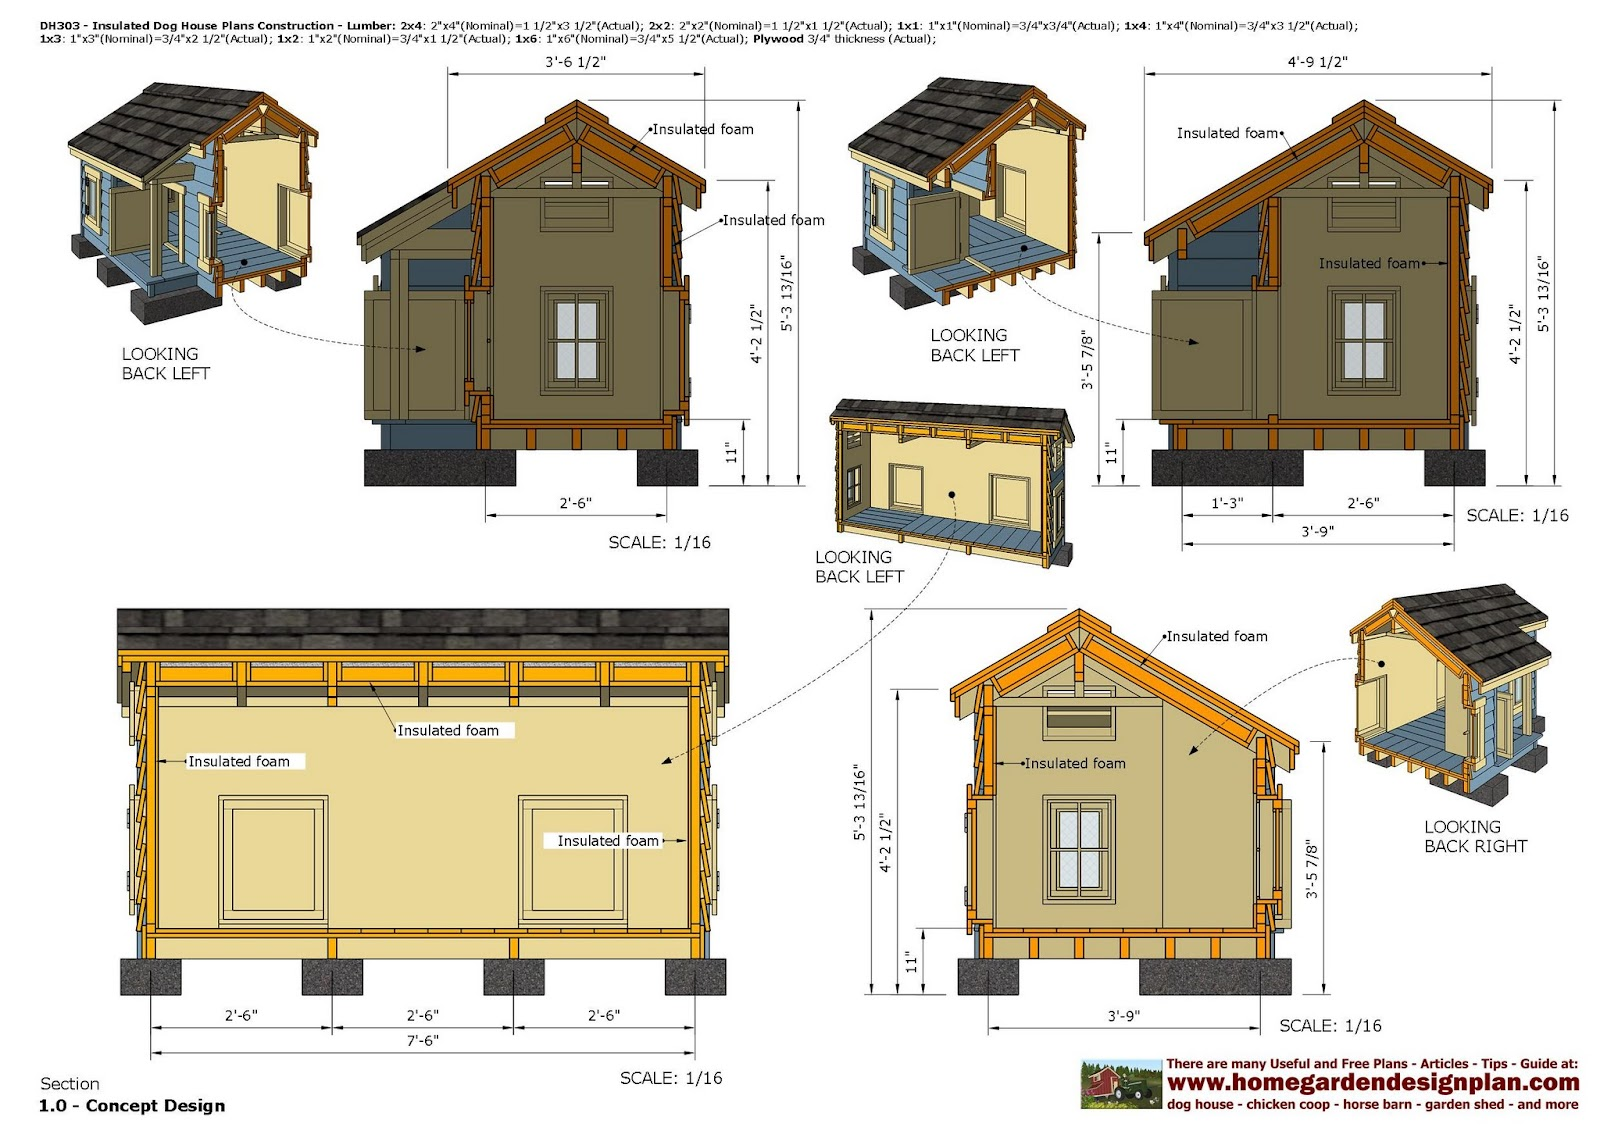 House design dog - Dh303 Insulated Dog House Plans Dog House Design